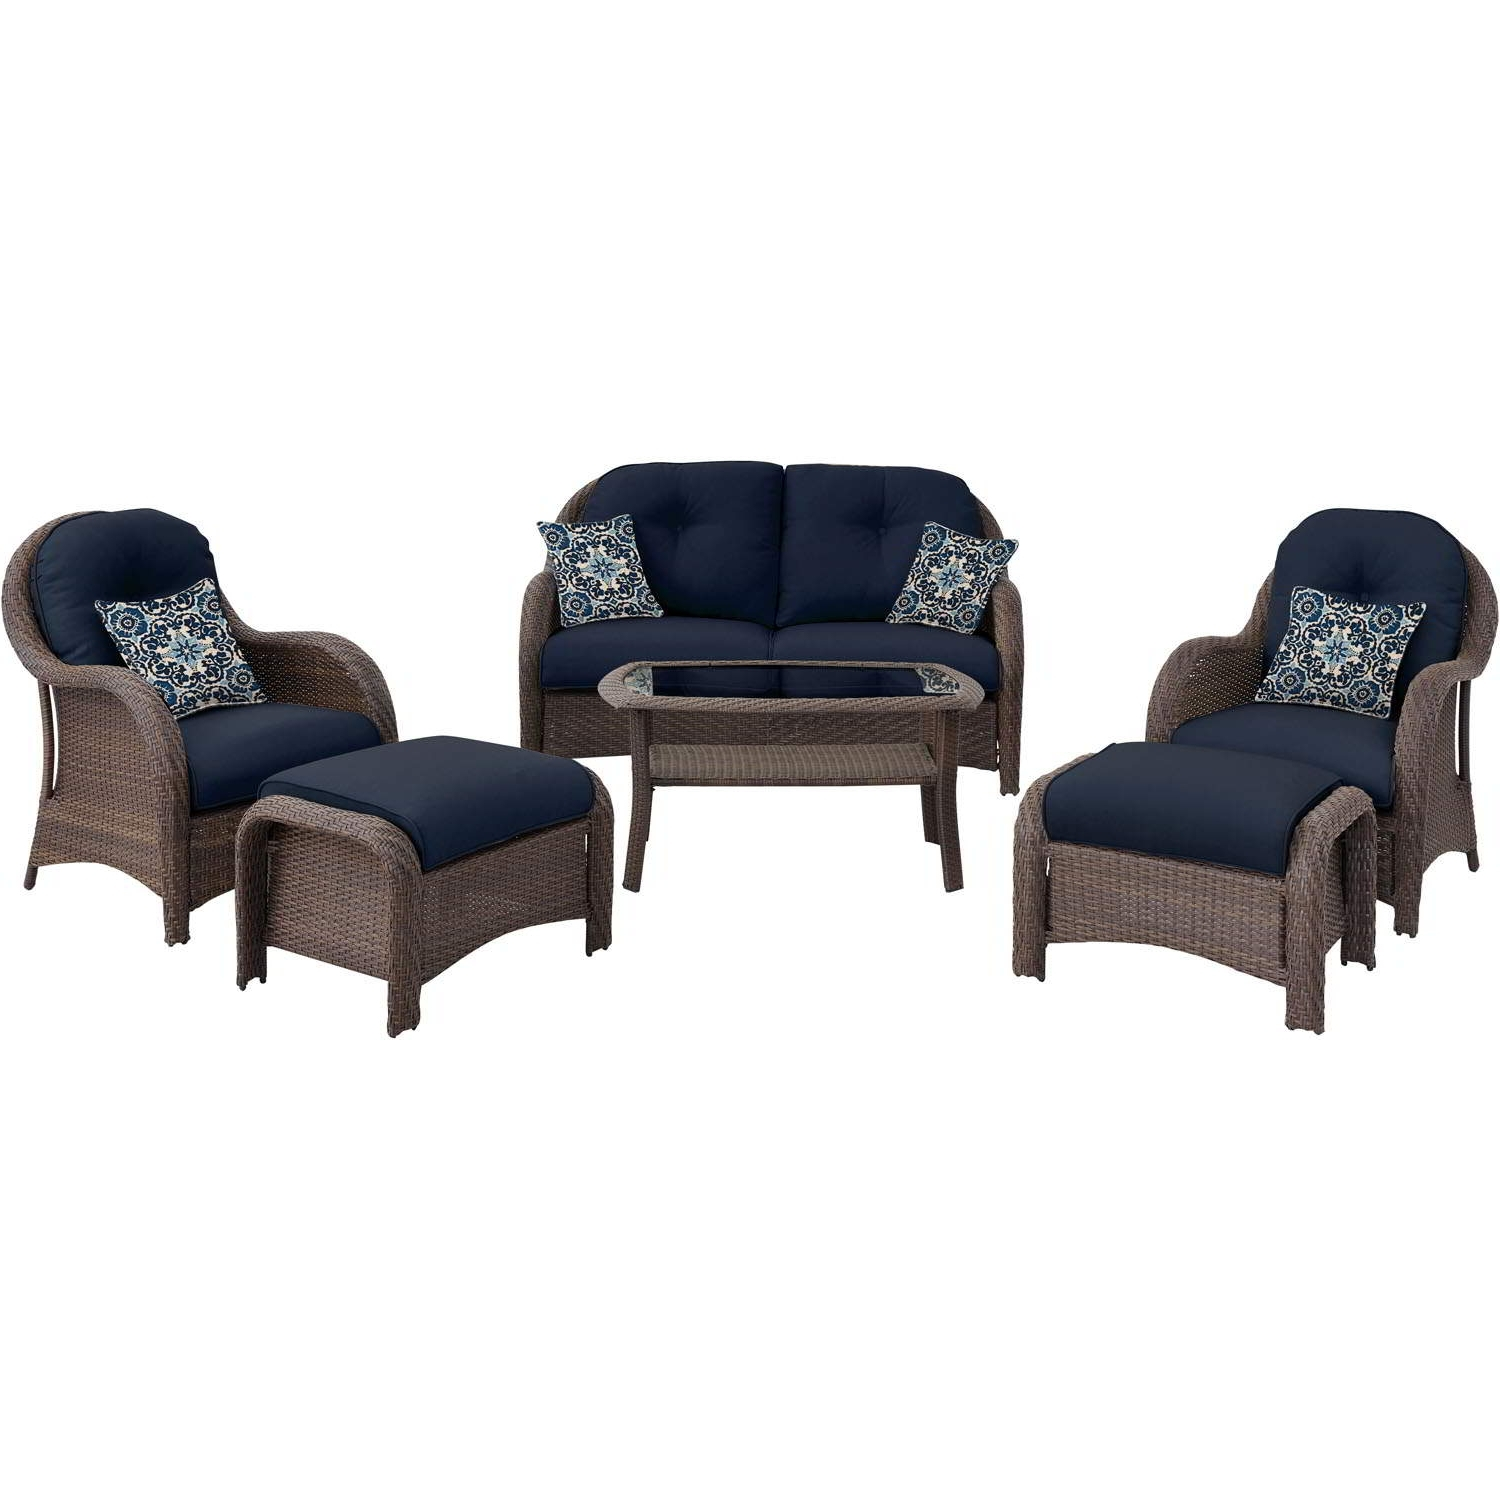 Preferred Patio Conversation Sets With Blue Cushions Throughout Newport 6 Piece Seating Set In Navy Blue – Newport6pc Nvy (View 15 of 20)